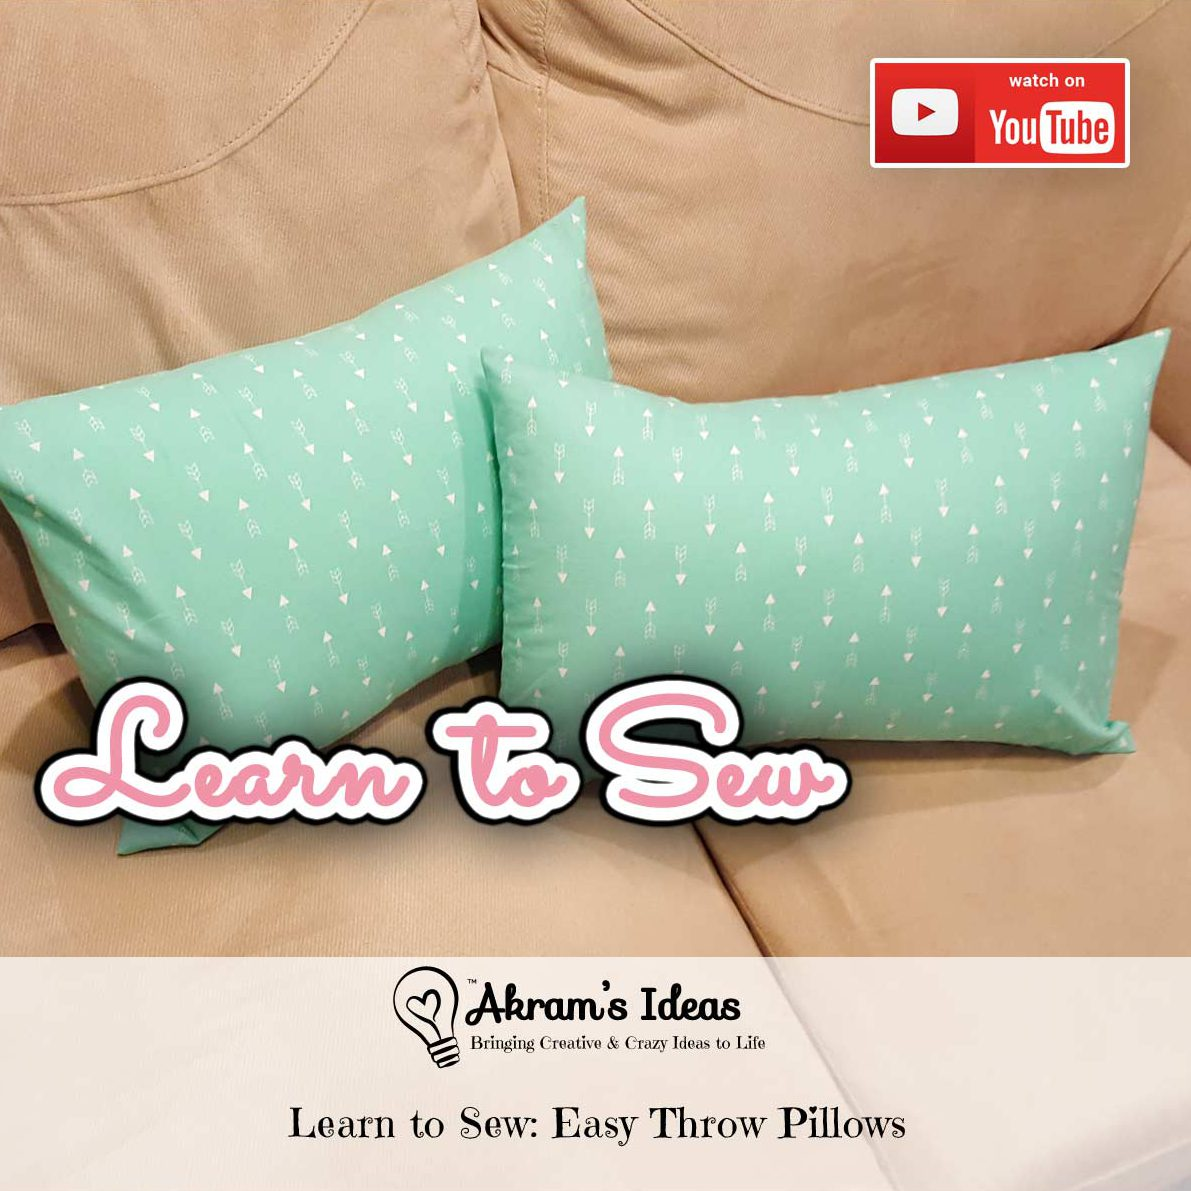 Learn to sew easy throw pillows with envelope opening. Make 2 pillows with out of 1 regular bed pillow and 1 yard of fabric.